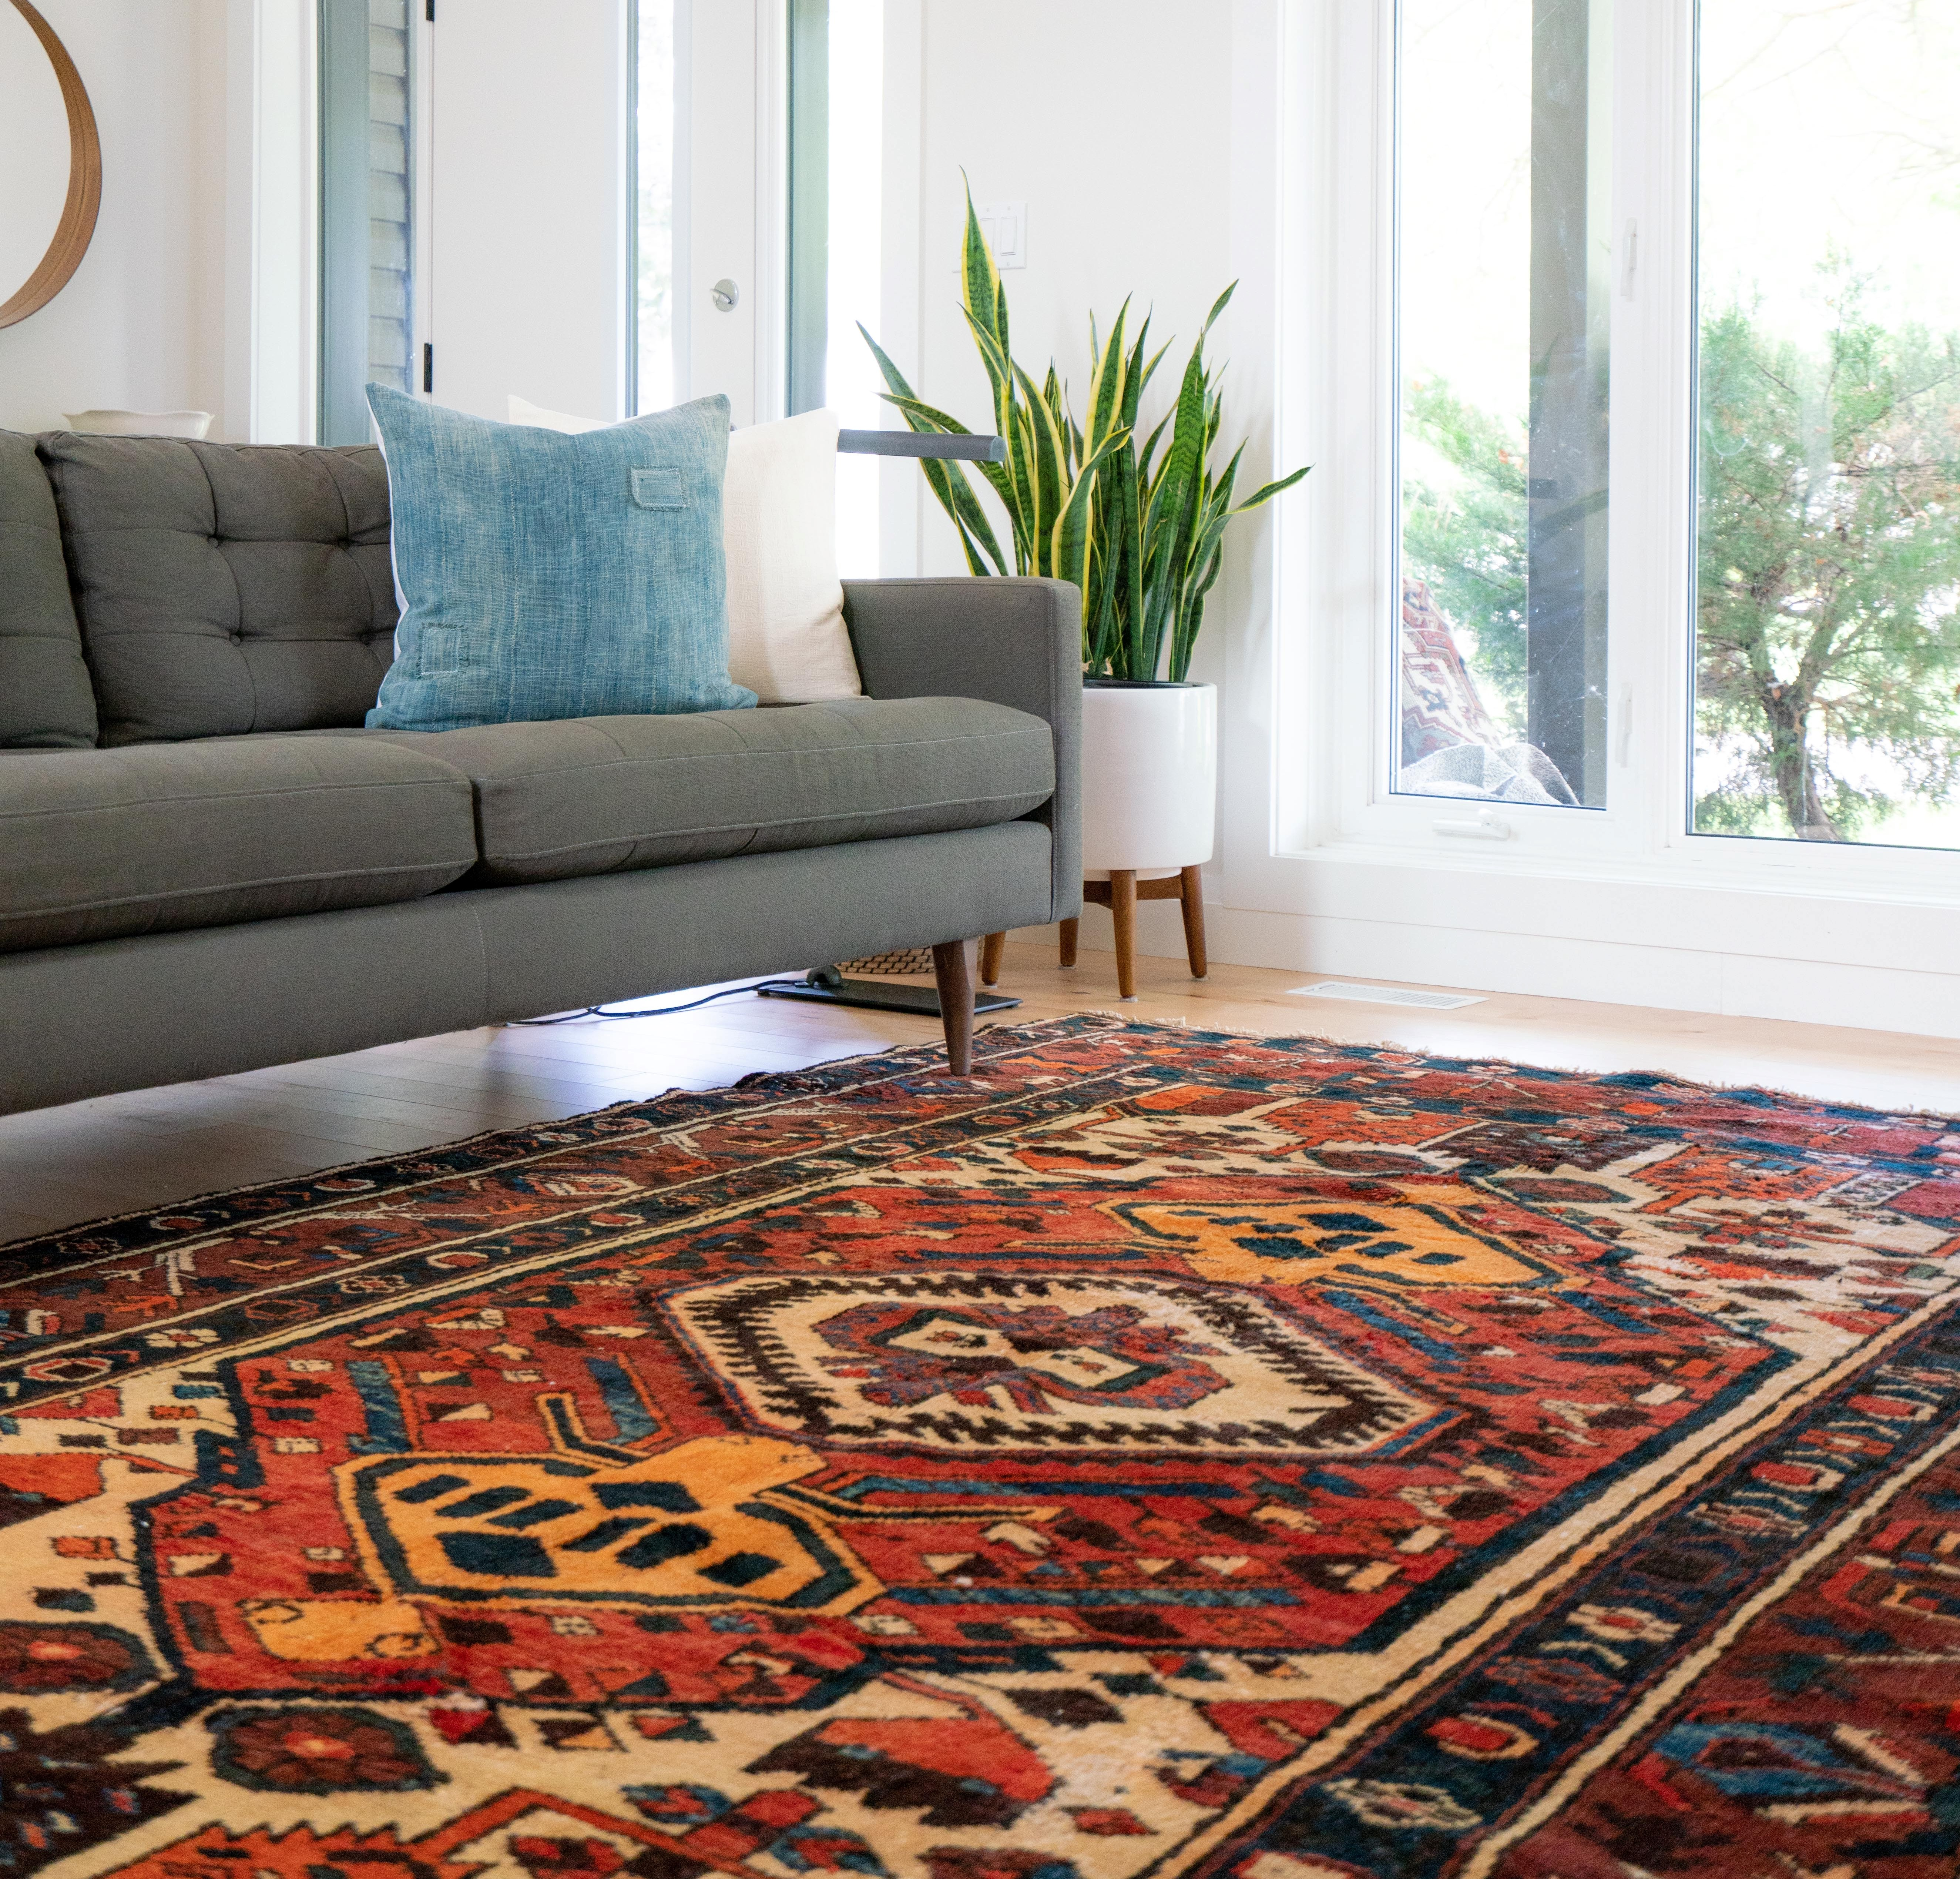 area rugs can help when insulating your home